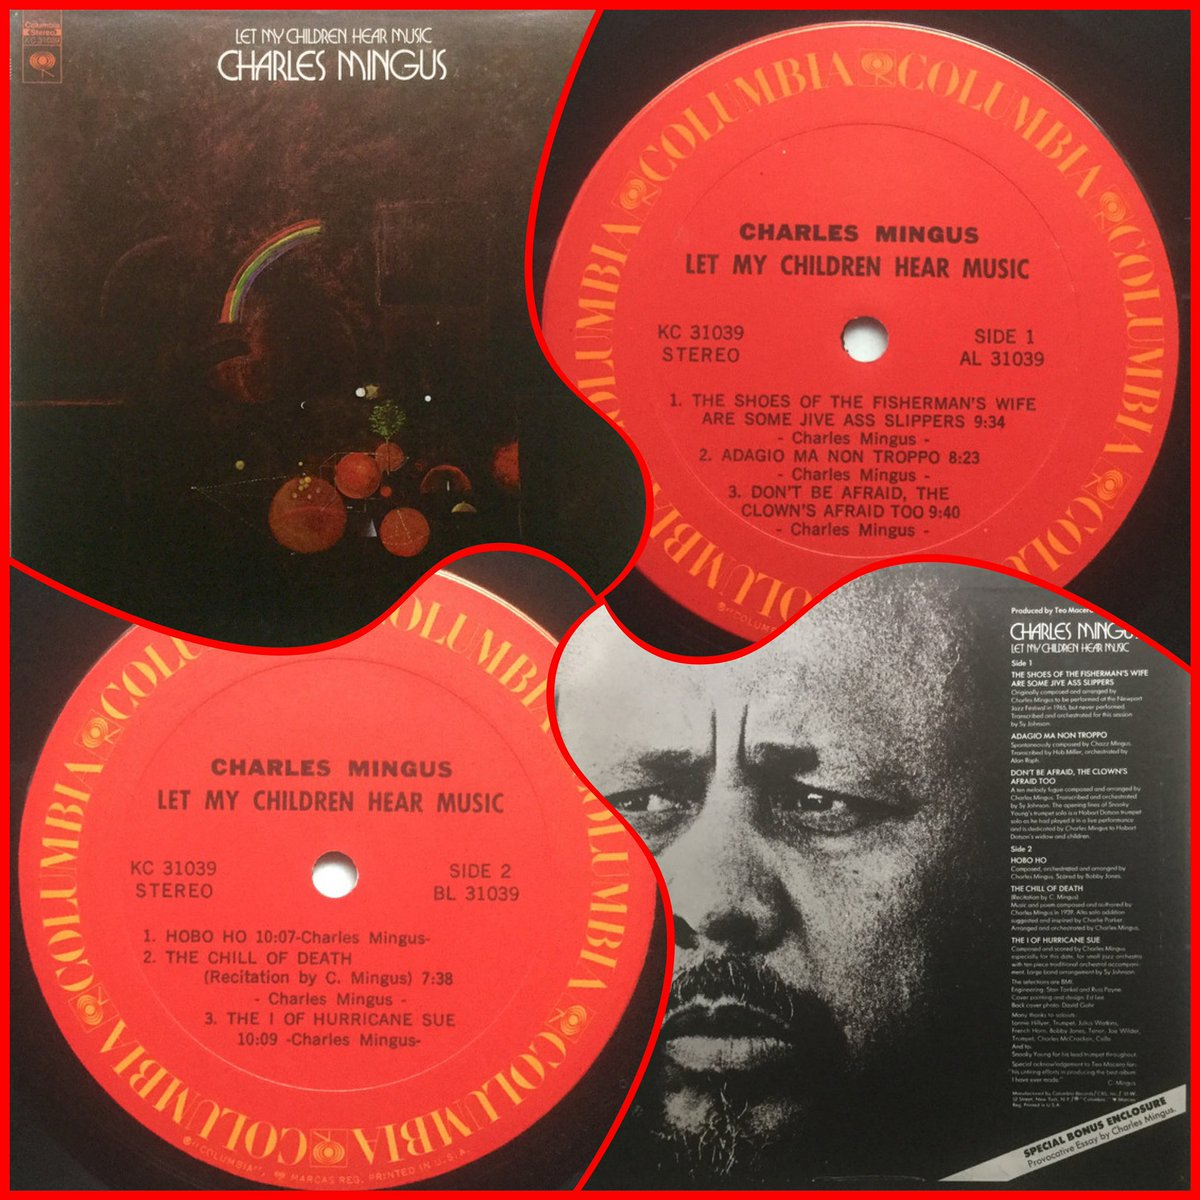 """Charles Mingus – Let My Children Hear Music  Any Lp  that starts with  """"The Shoes of the Fisherman's Wife Are Some Jiveass Slippers""""  ..you're gonna stick with..  https://www.youtube.com/watch?v=Rbdx-jR3a8U&list=OLAK5uy_lJoQMoK7yRvgtmlJRCm0WZsXlLuQ2Tt4U…  #charlesmingus #letmychildrenhearmusic #recorded1971 #released1972 #jazz #avantgardejazz pic.twitter.com/5WhgyvM5ce"""